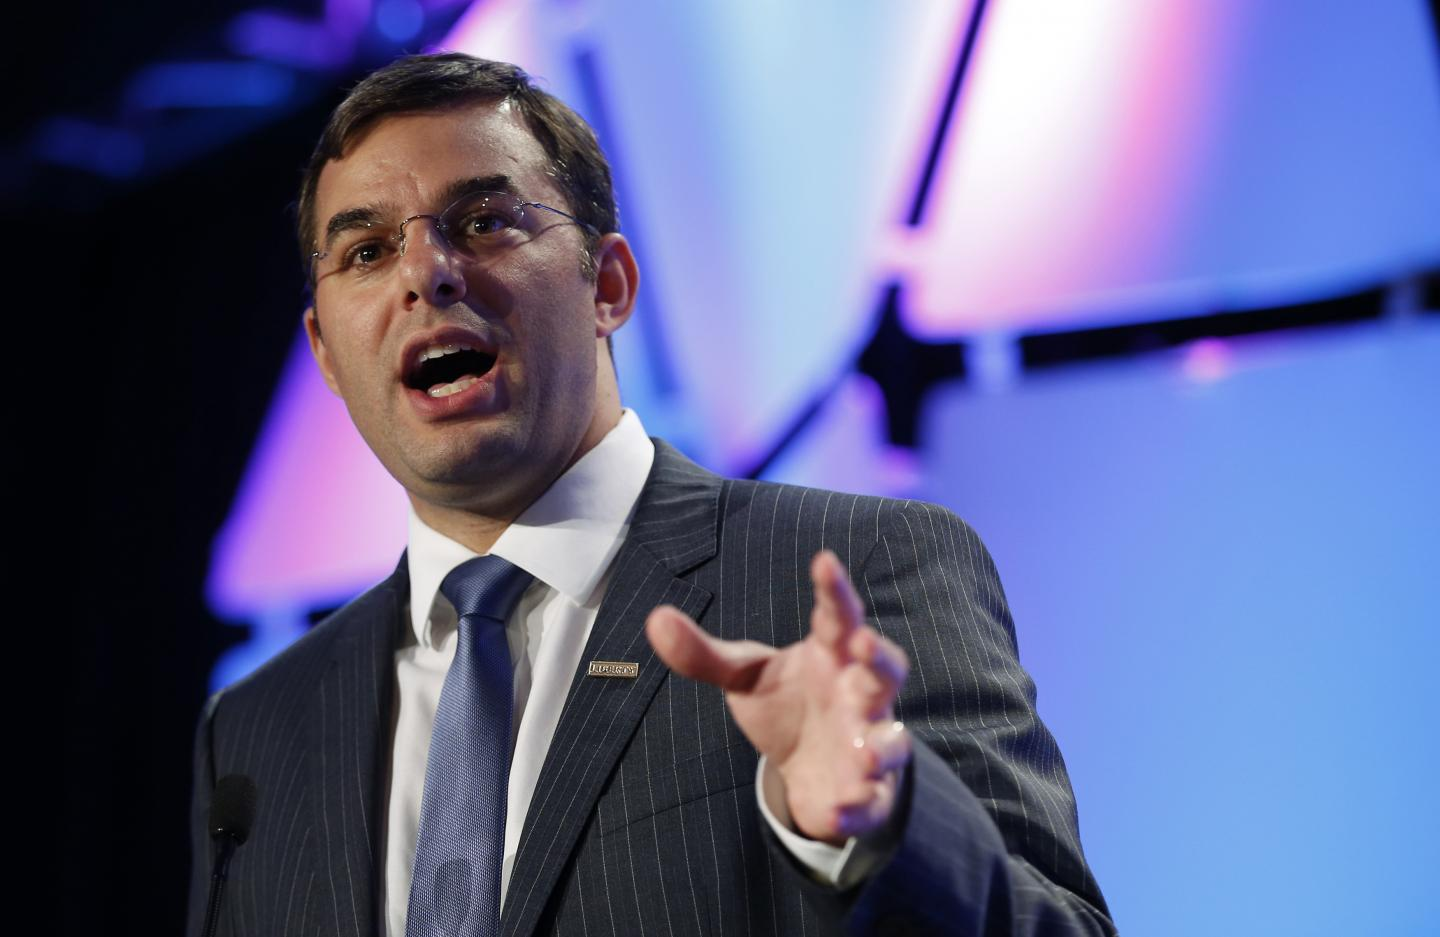 Odd Man Out: How the Independent Justin Amash Could Shake Up the 2020 Presidential Election